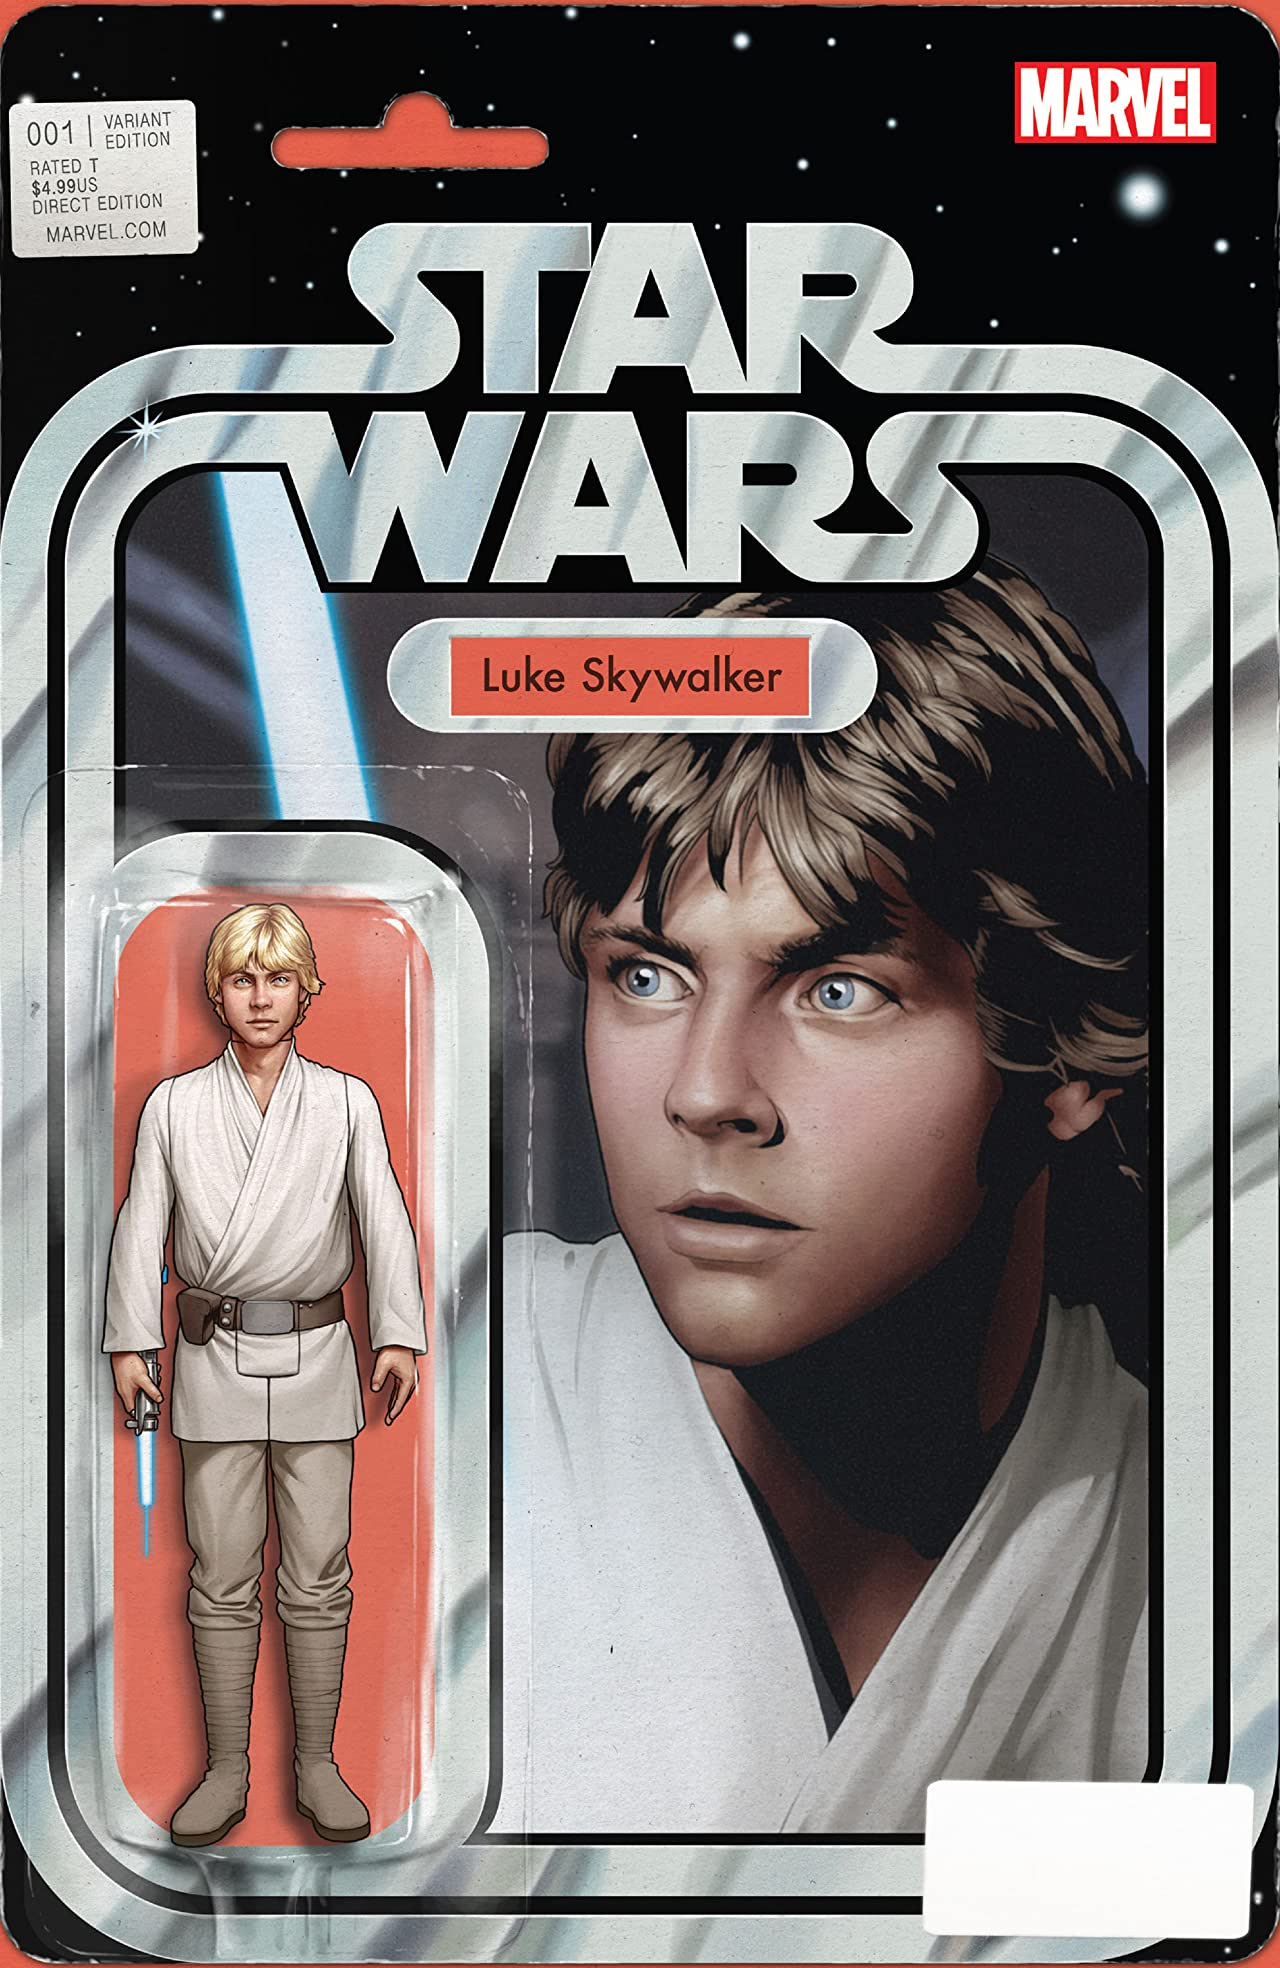 Star Wars: The Action Figure Variant Covers (2020) #1